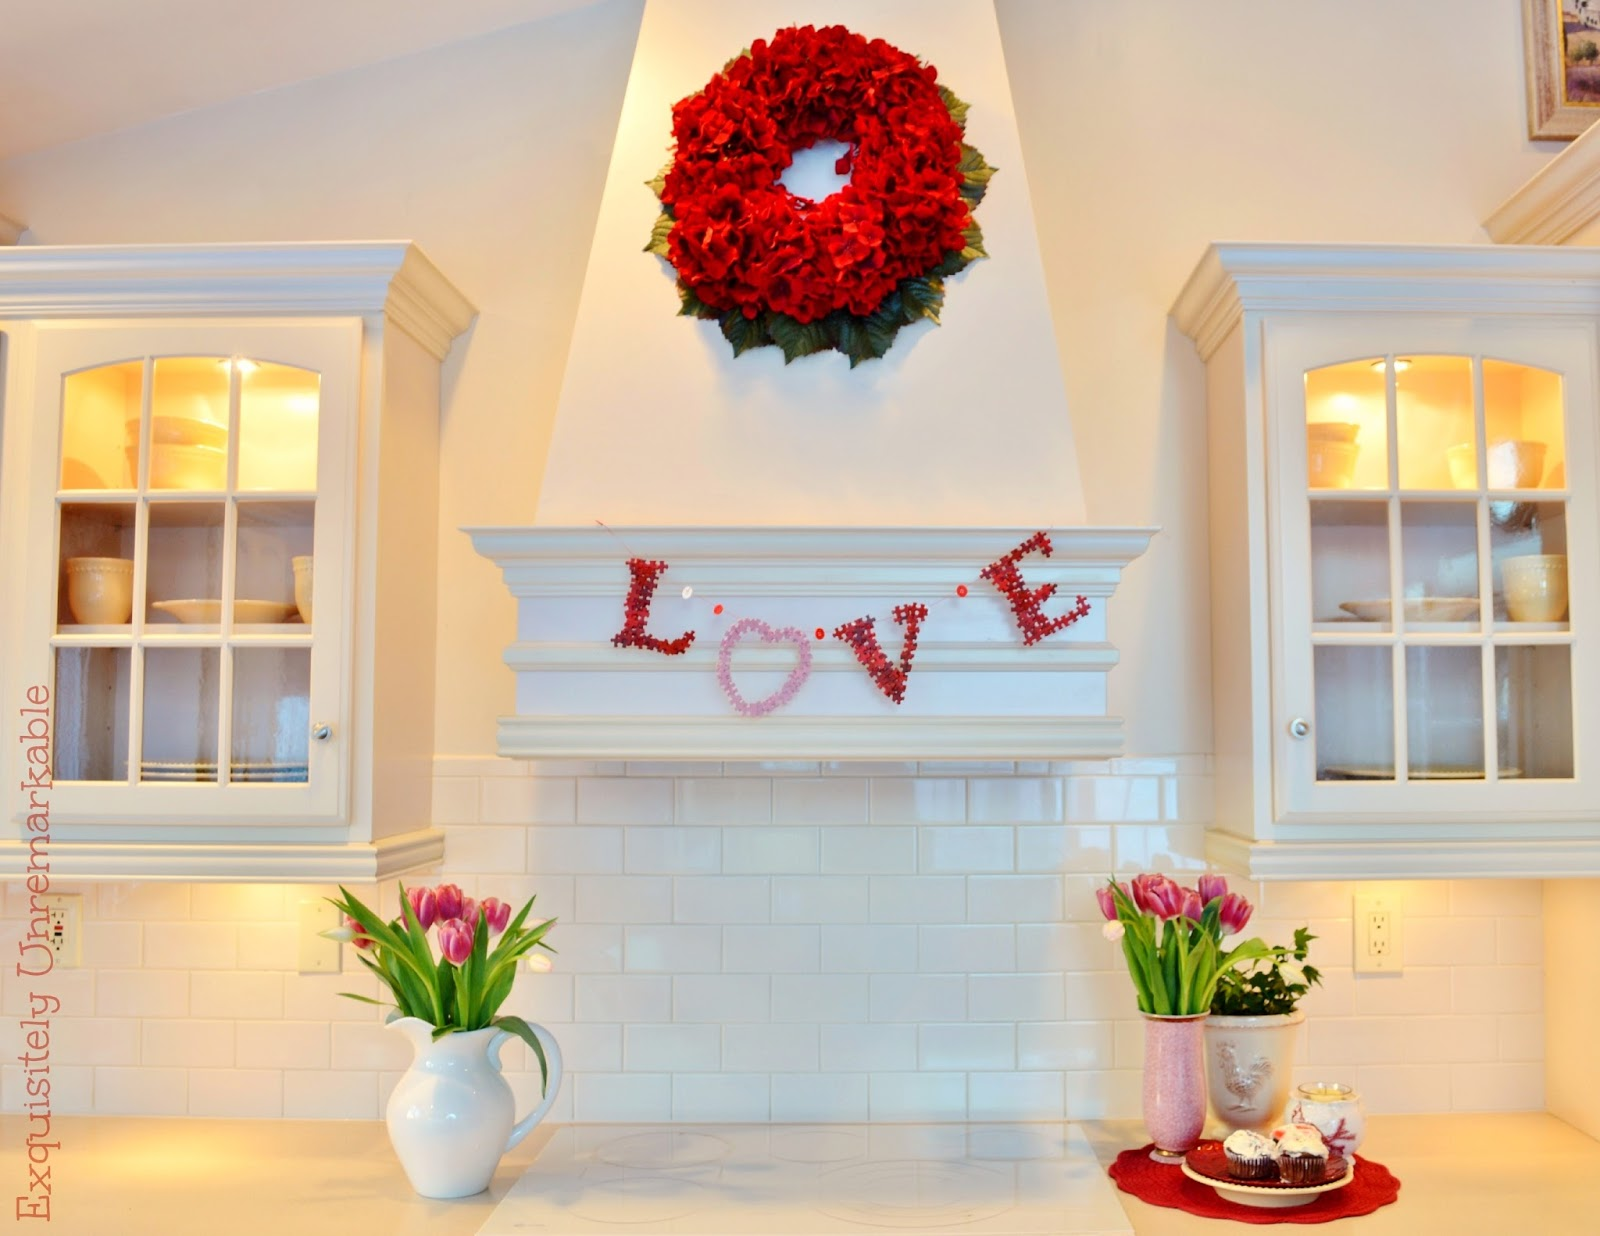 Kitchen Decor For Valentine's Day Love